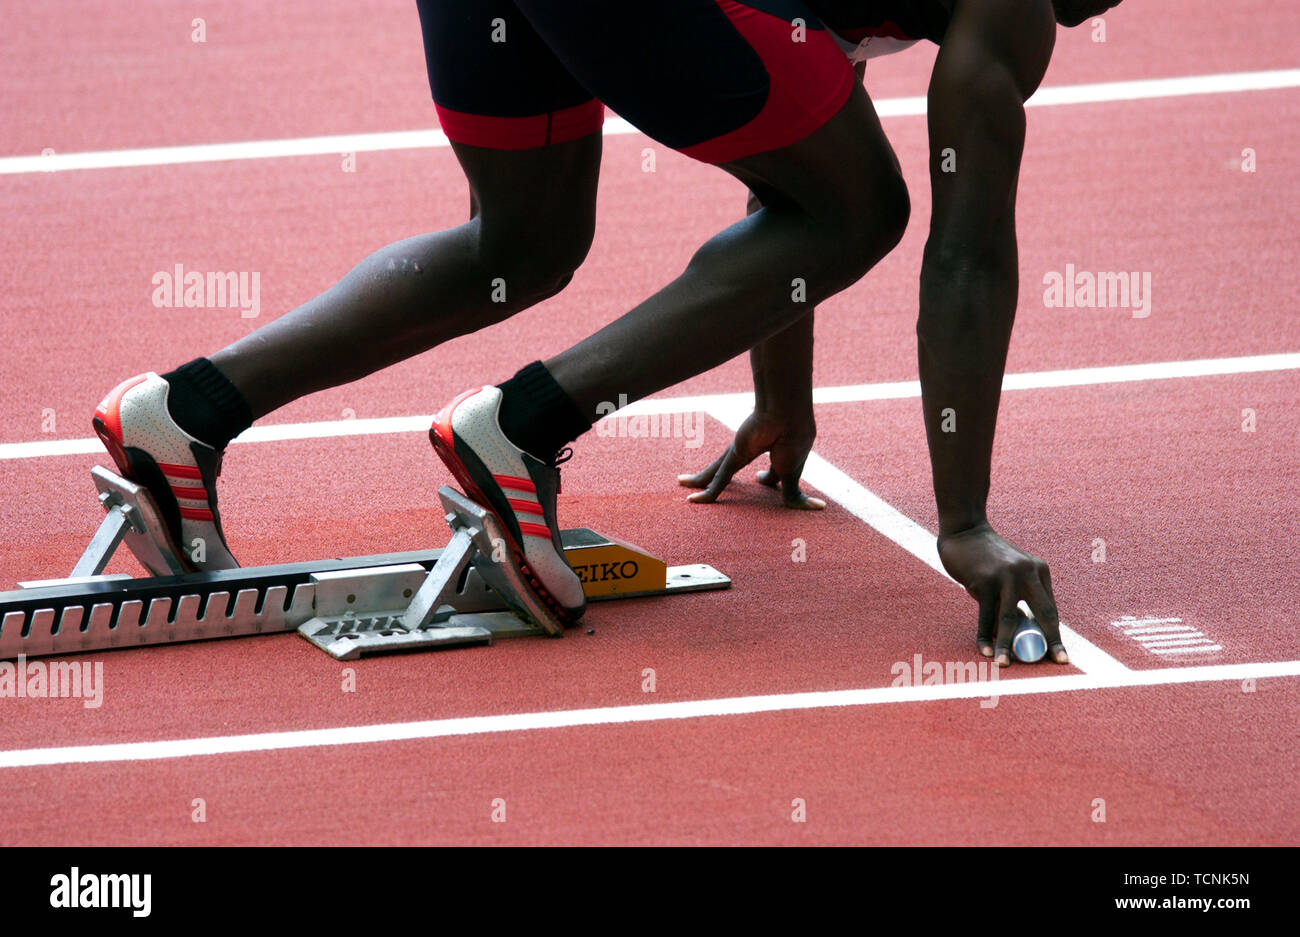 Stade de France Saint Denis near Paris 30.8.2003, IX World Championships in Athletics ---- relay runner at the start - Stock Image